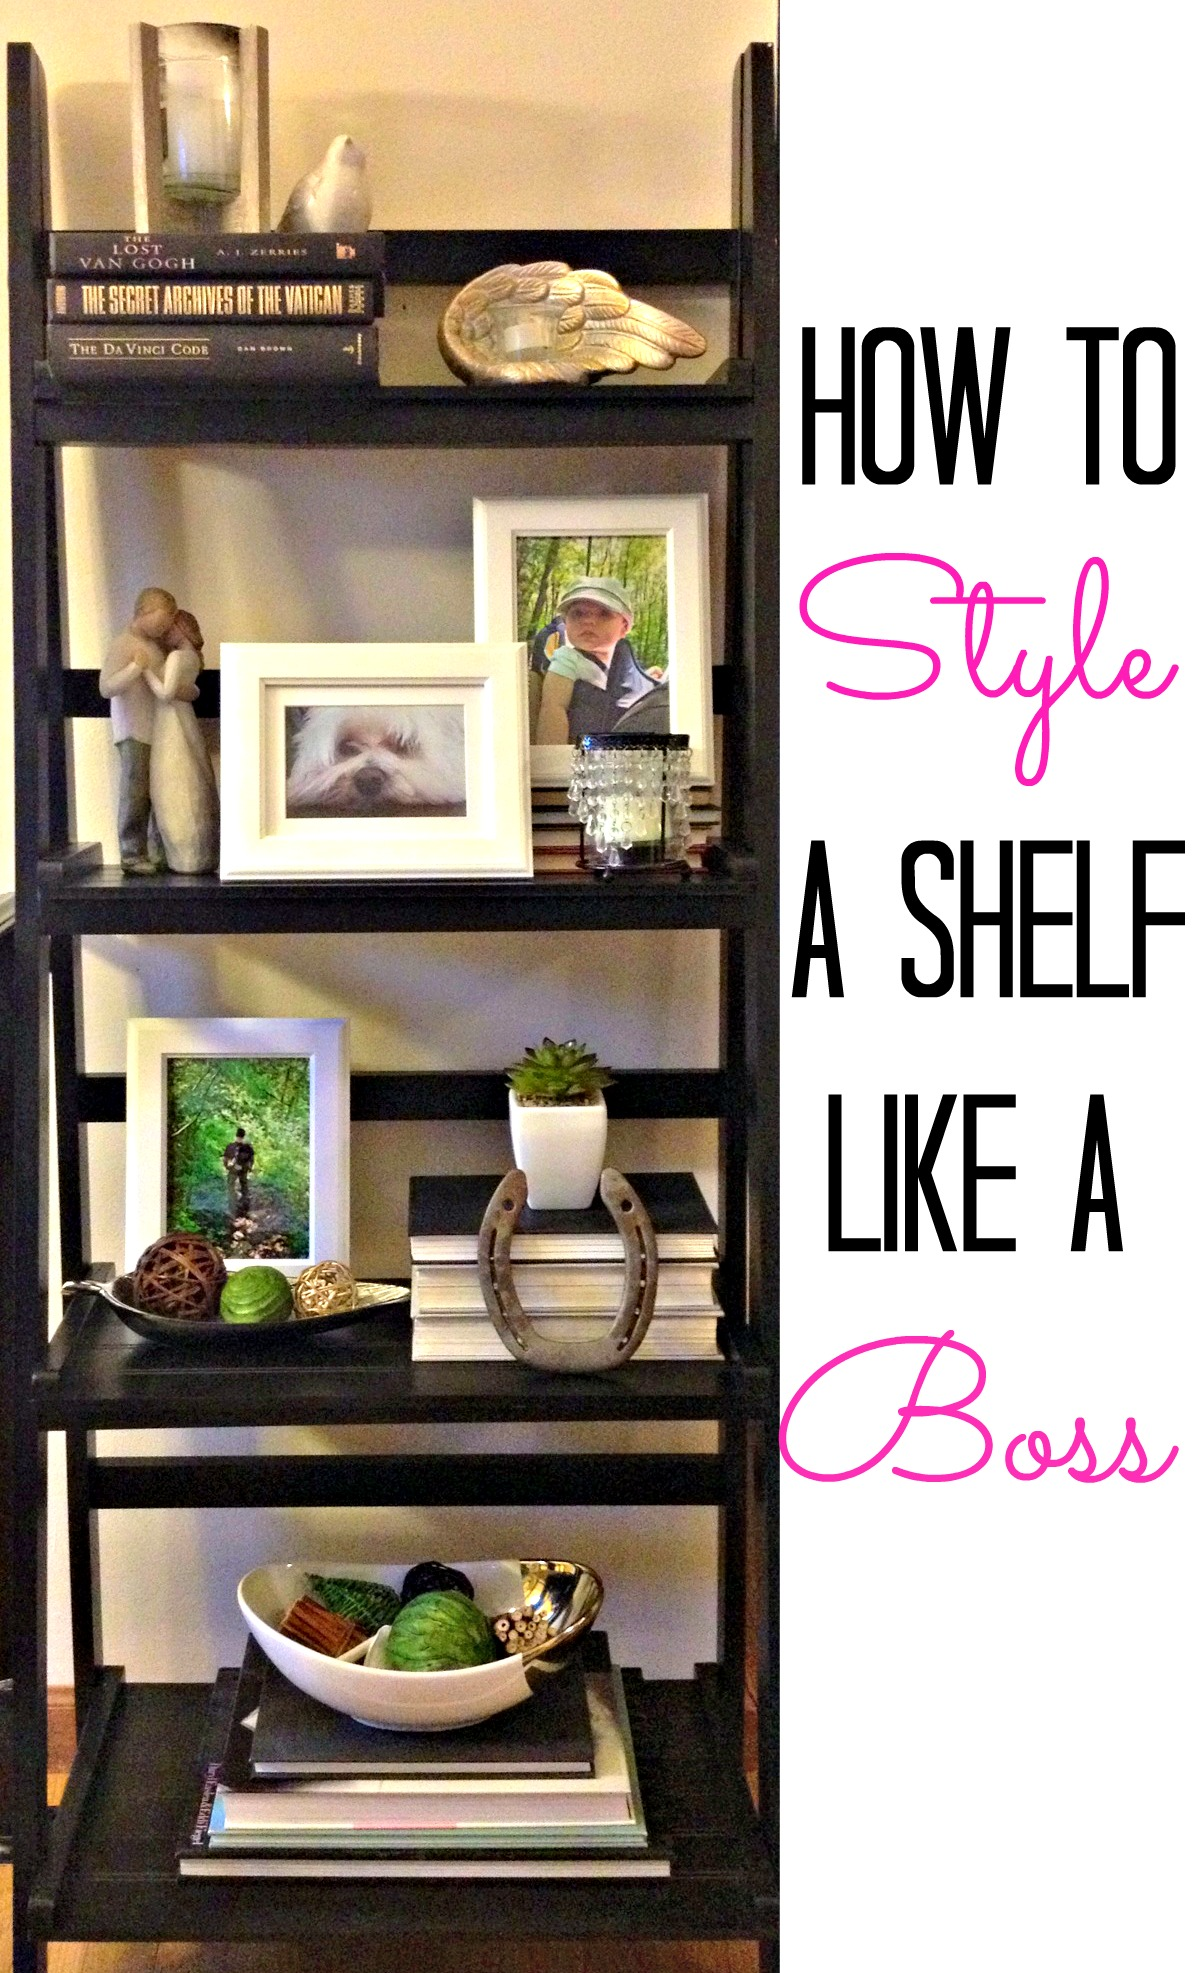 Decorating With Wall Shelves How To Style A Shelf Like A Boss